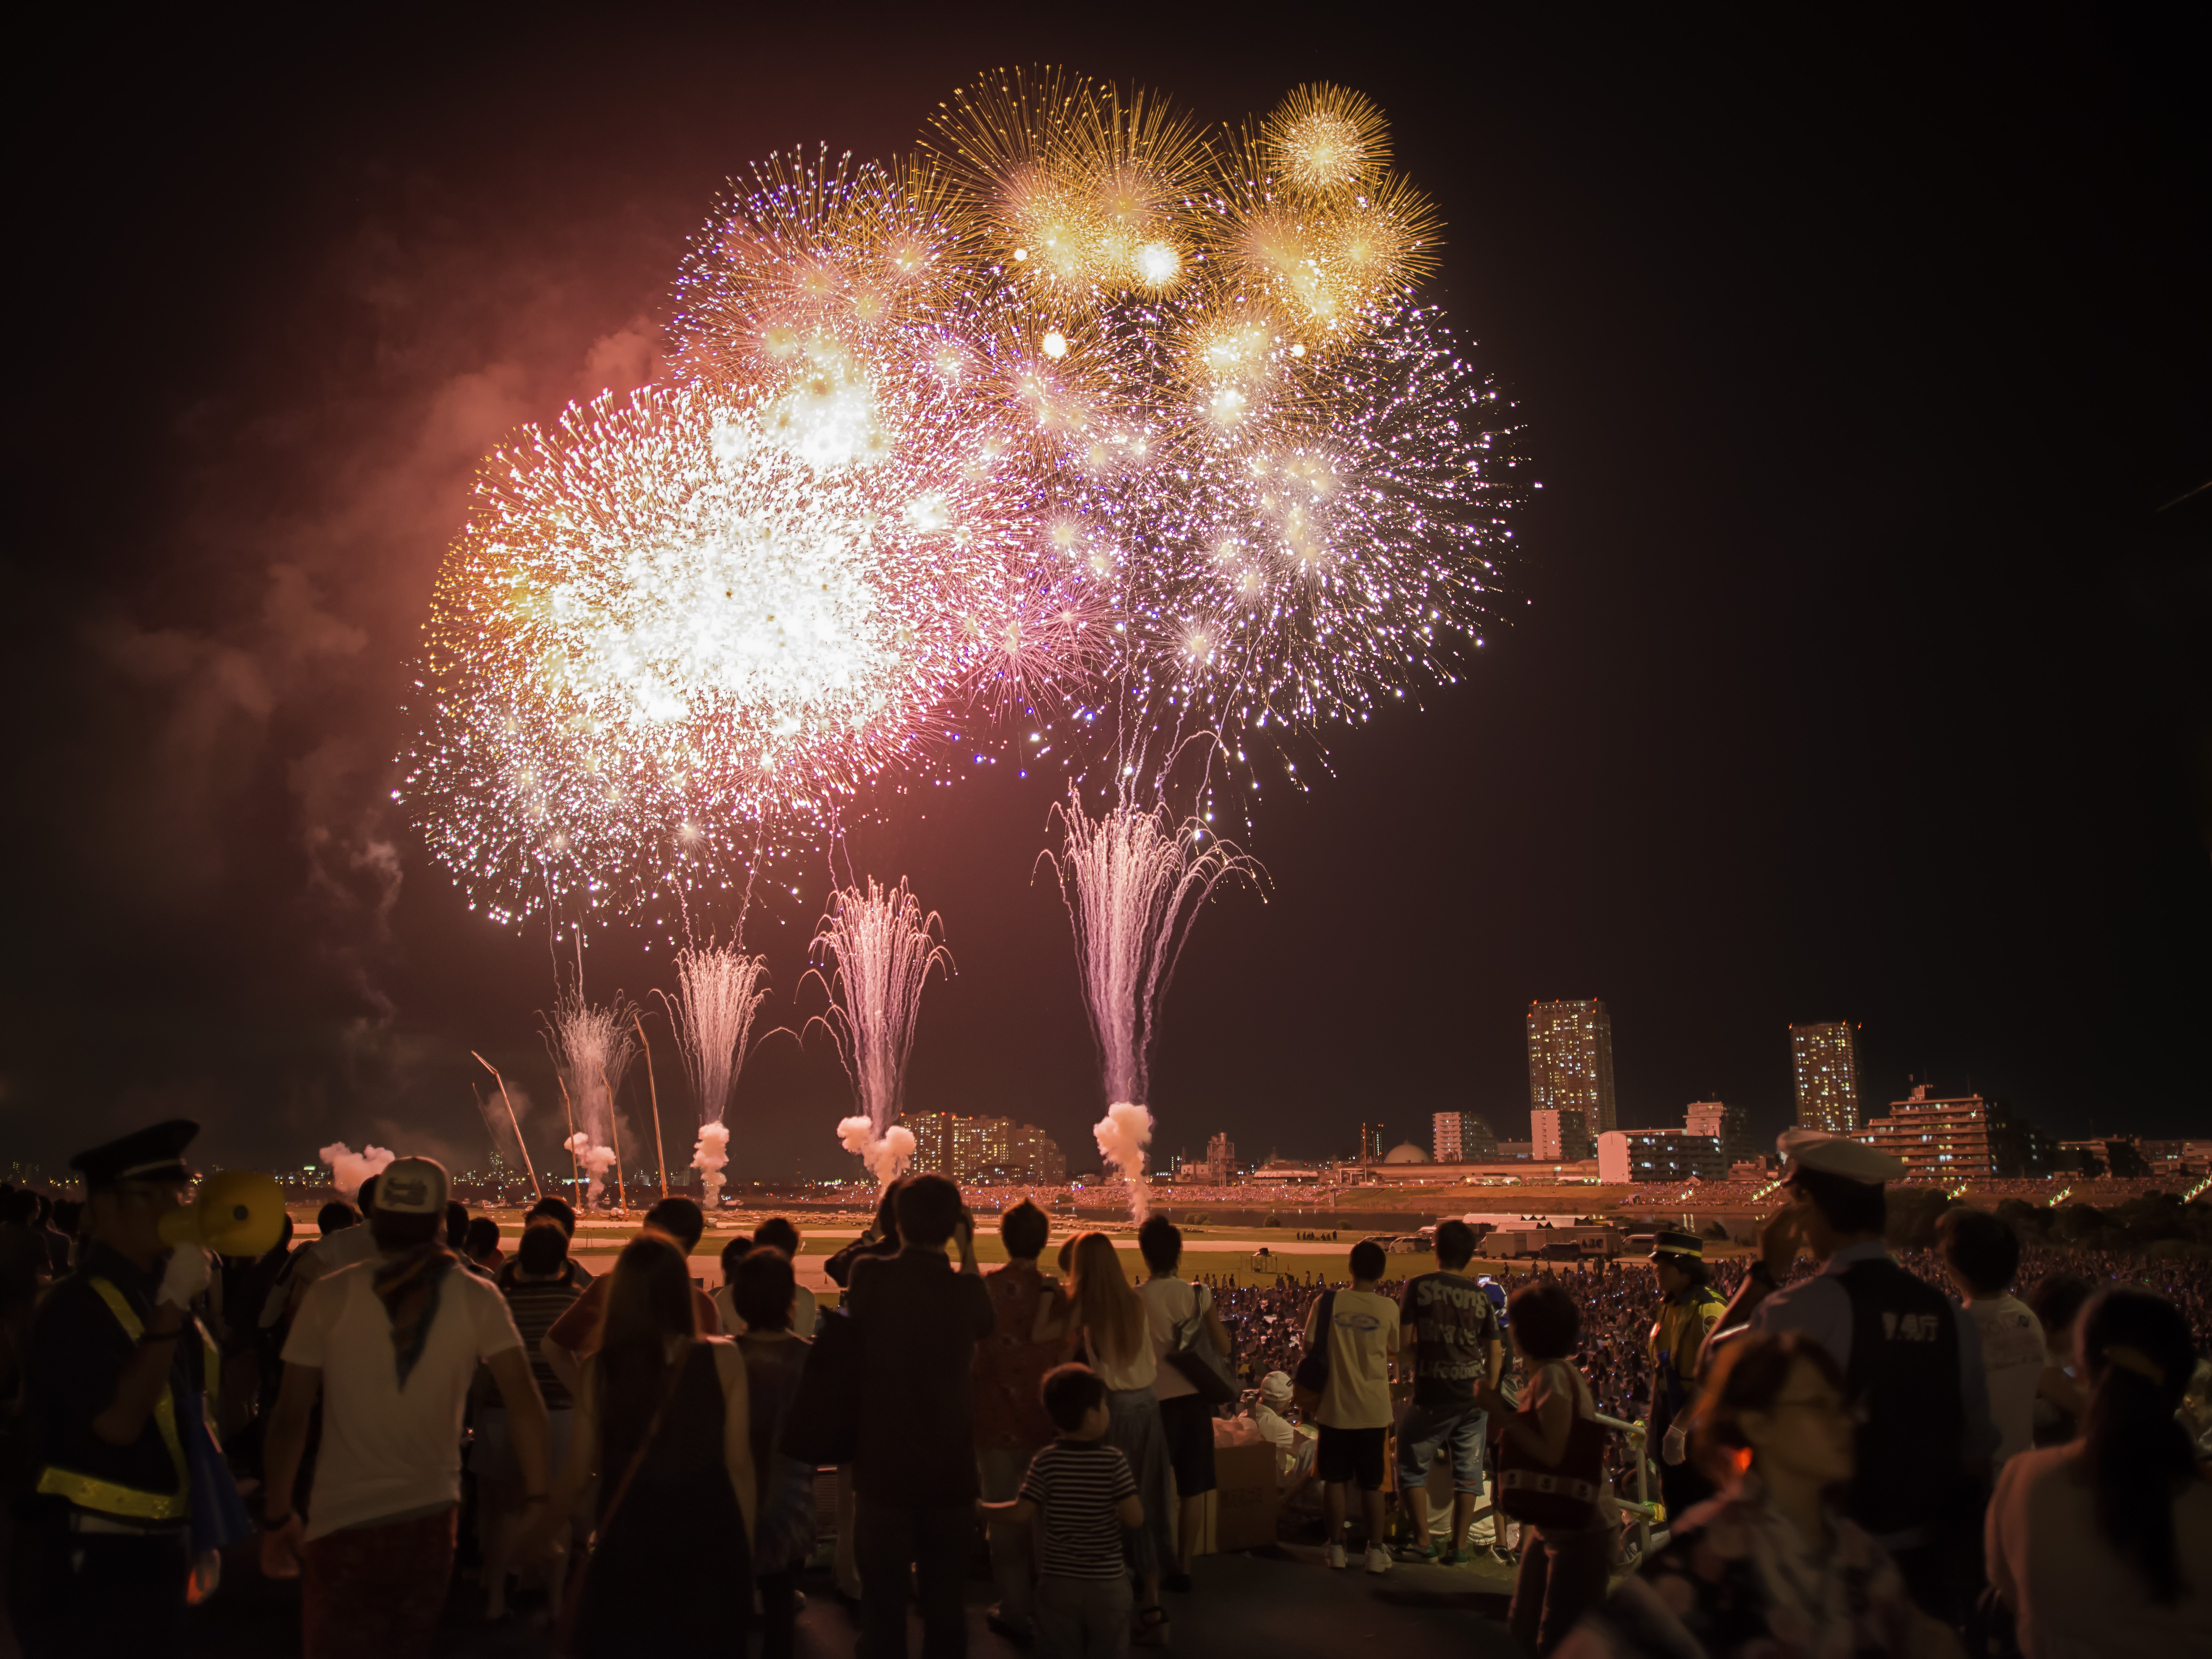 photo from https://grittymonkey.wordpress.com/2012/11/24/edogawa-hanabi-taikai/